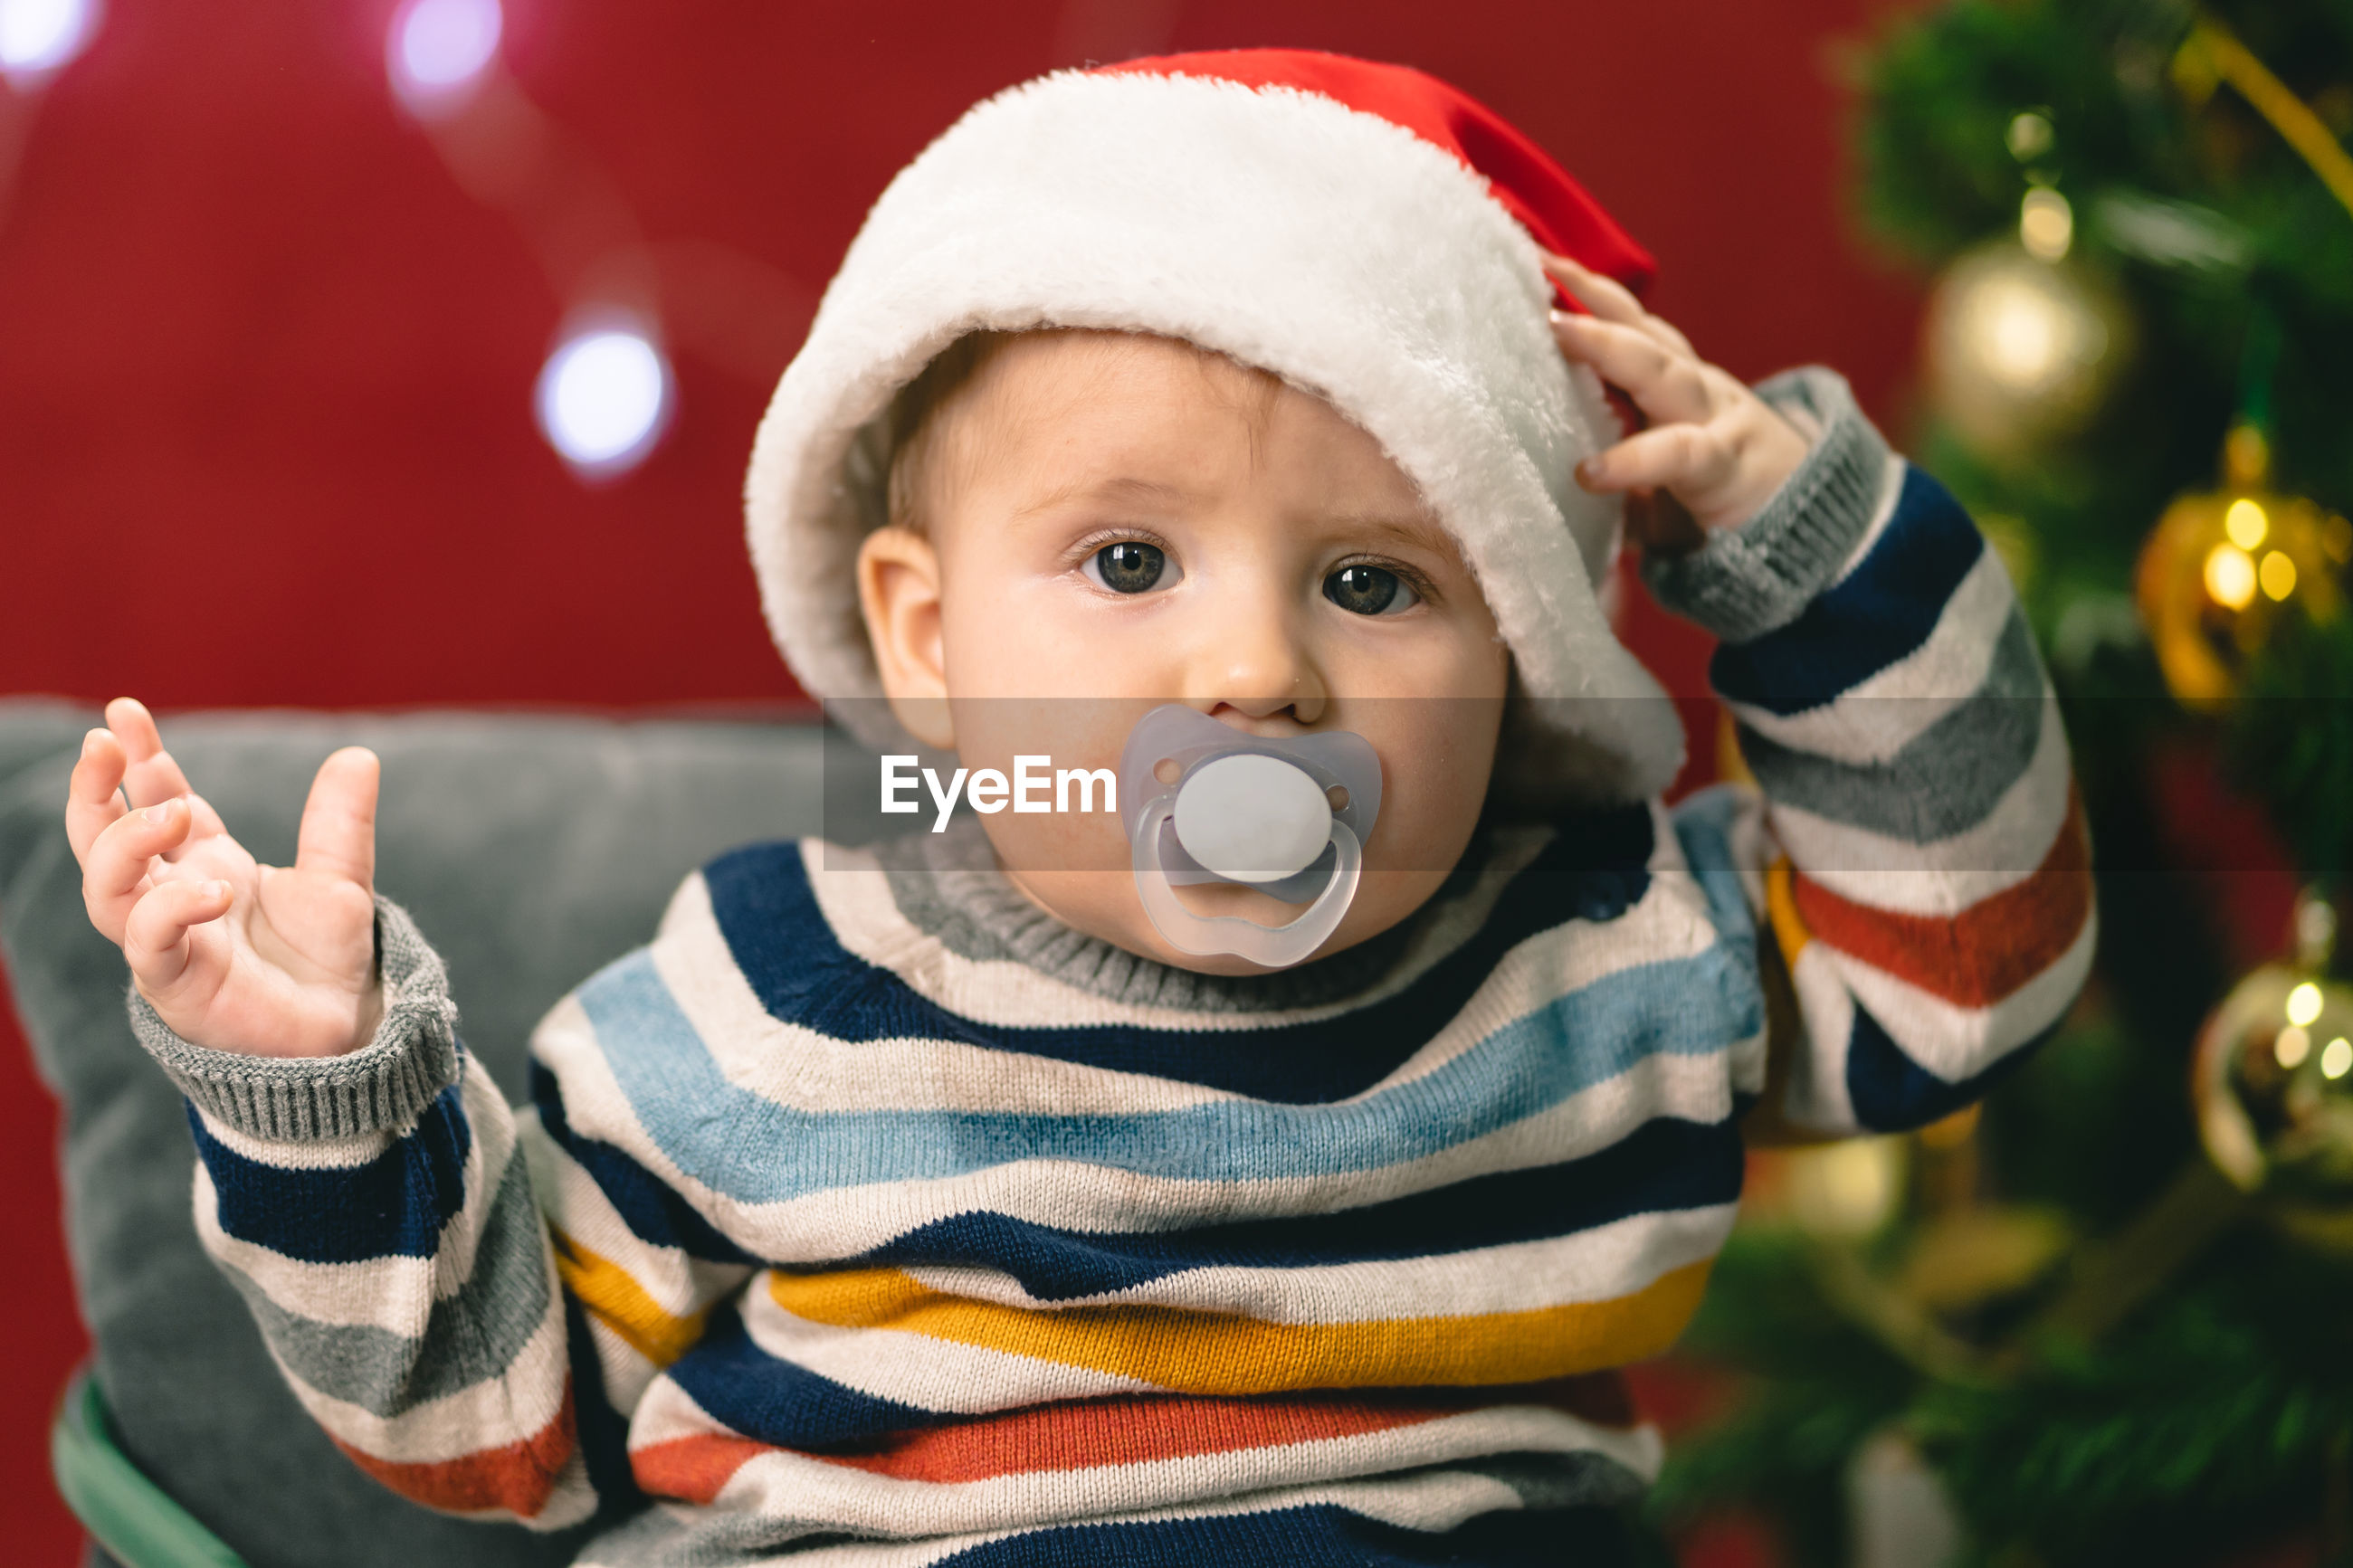 Portrait of cute baby boy with pacifier in mouth wearing santa hat